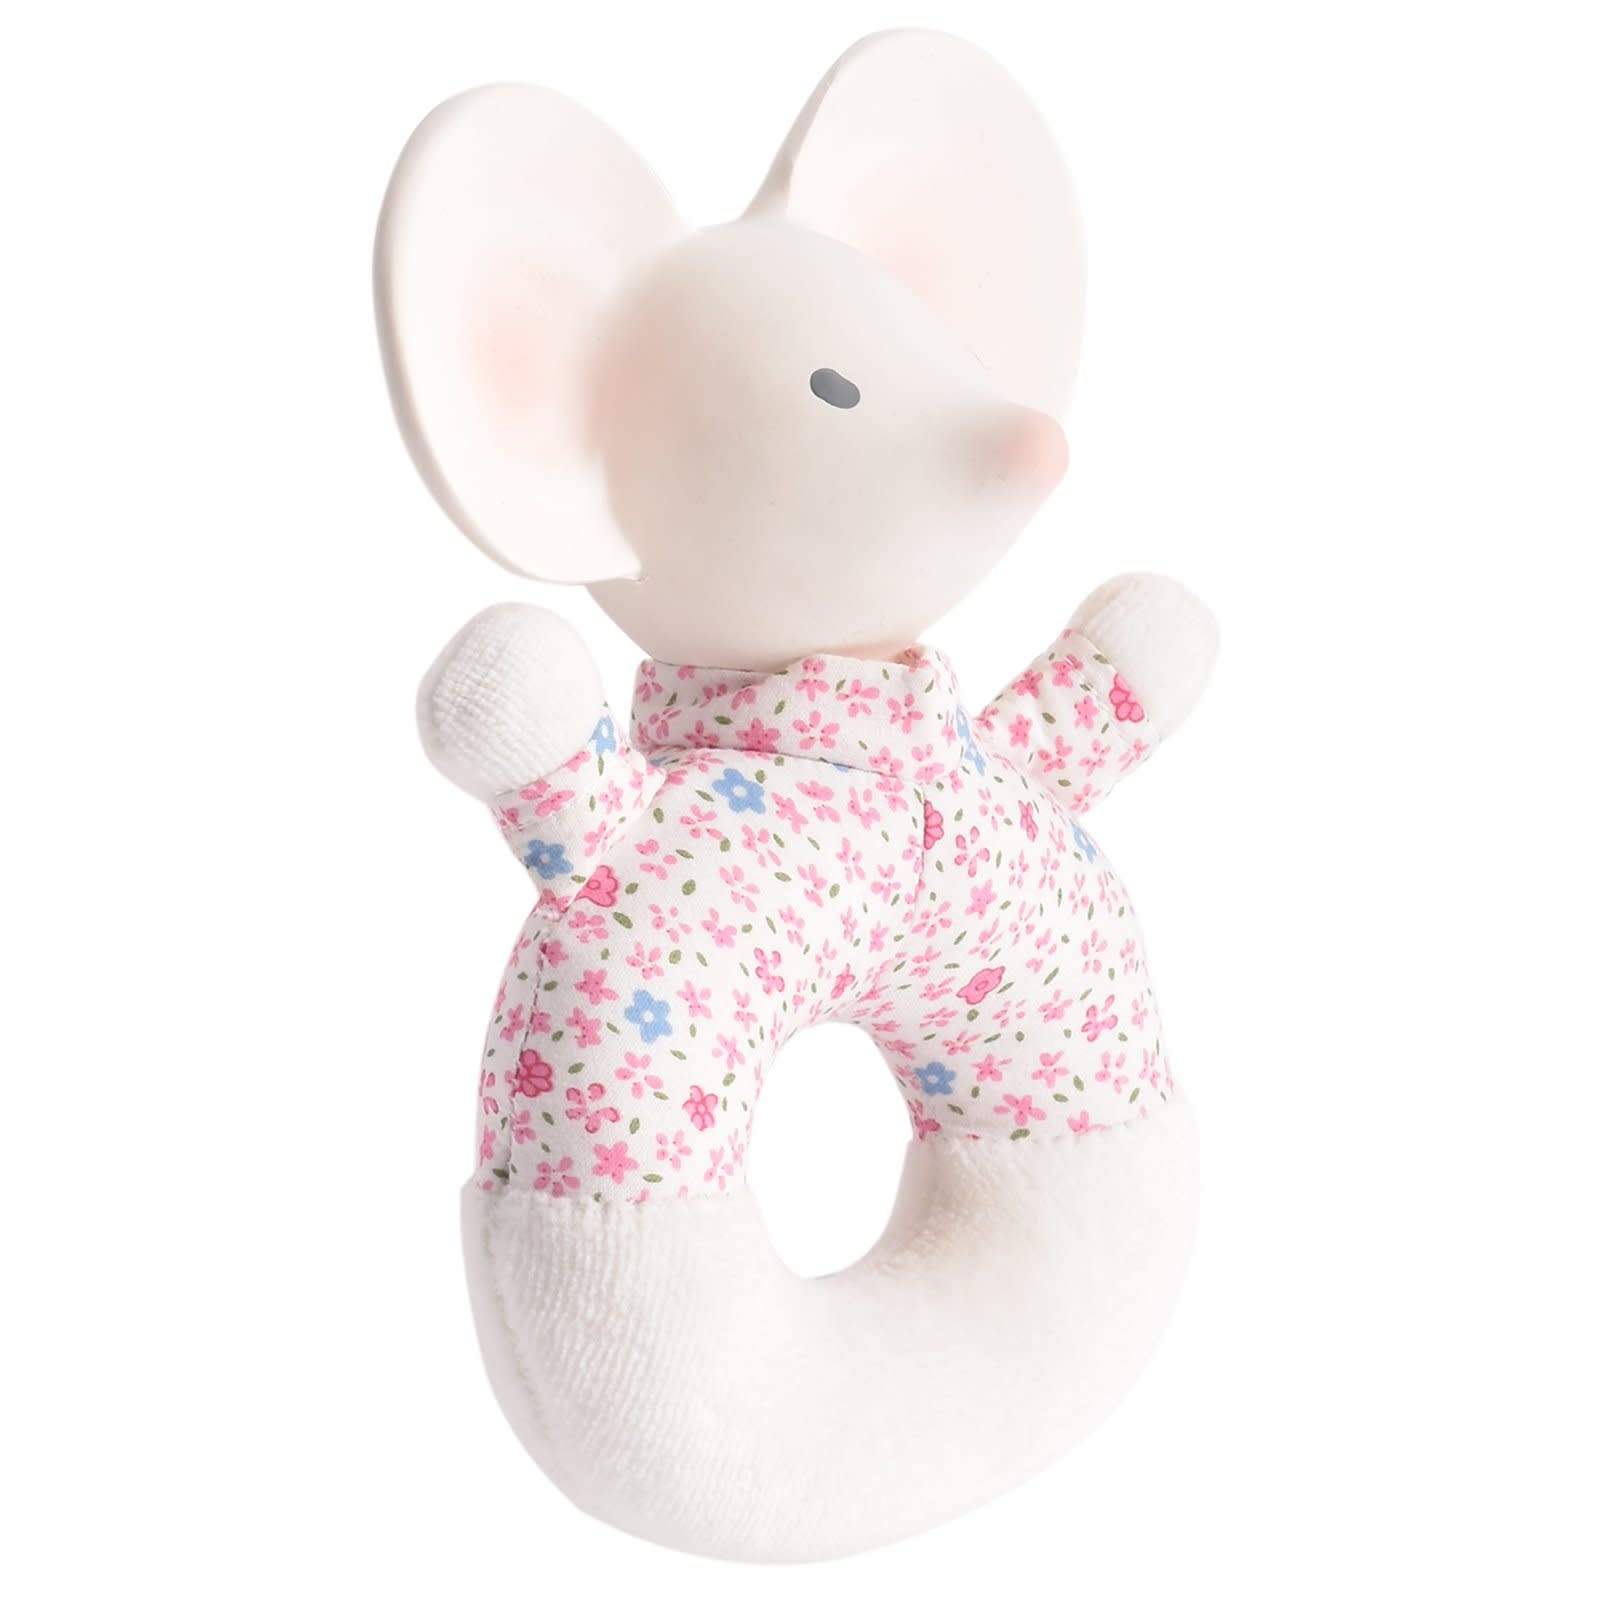 Meiya the Mouse - Soft Rattle with Rubber Head-1